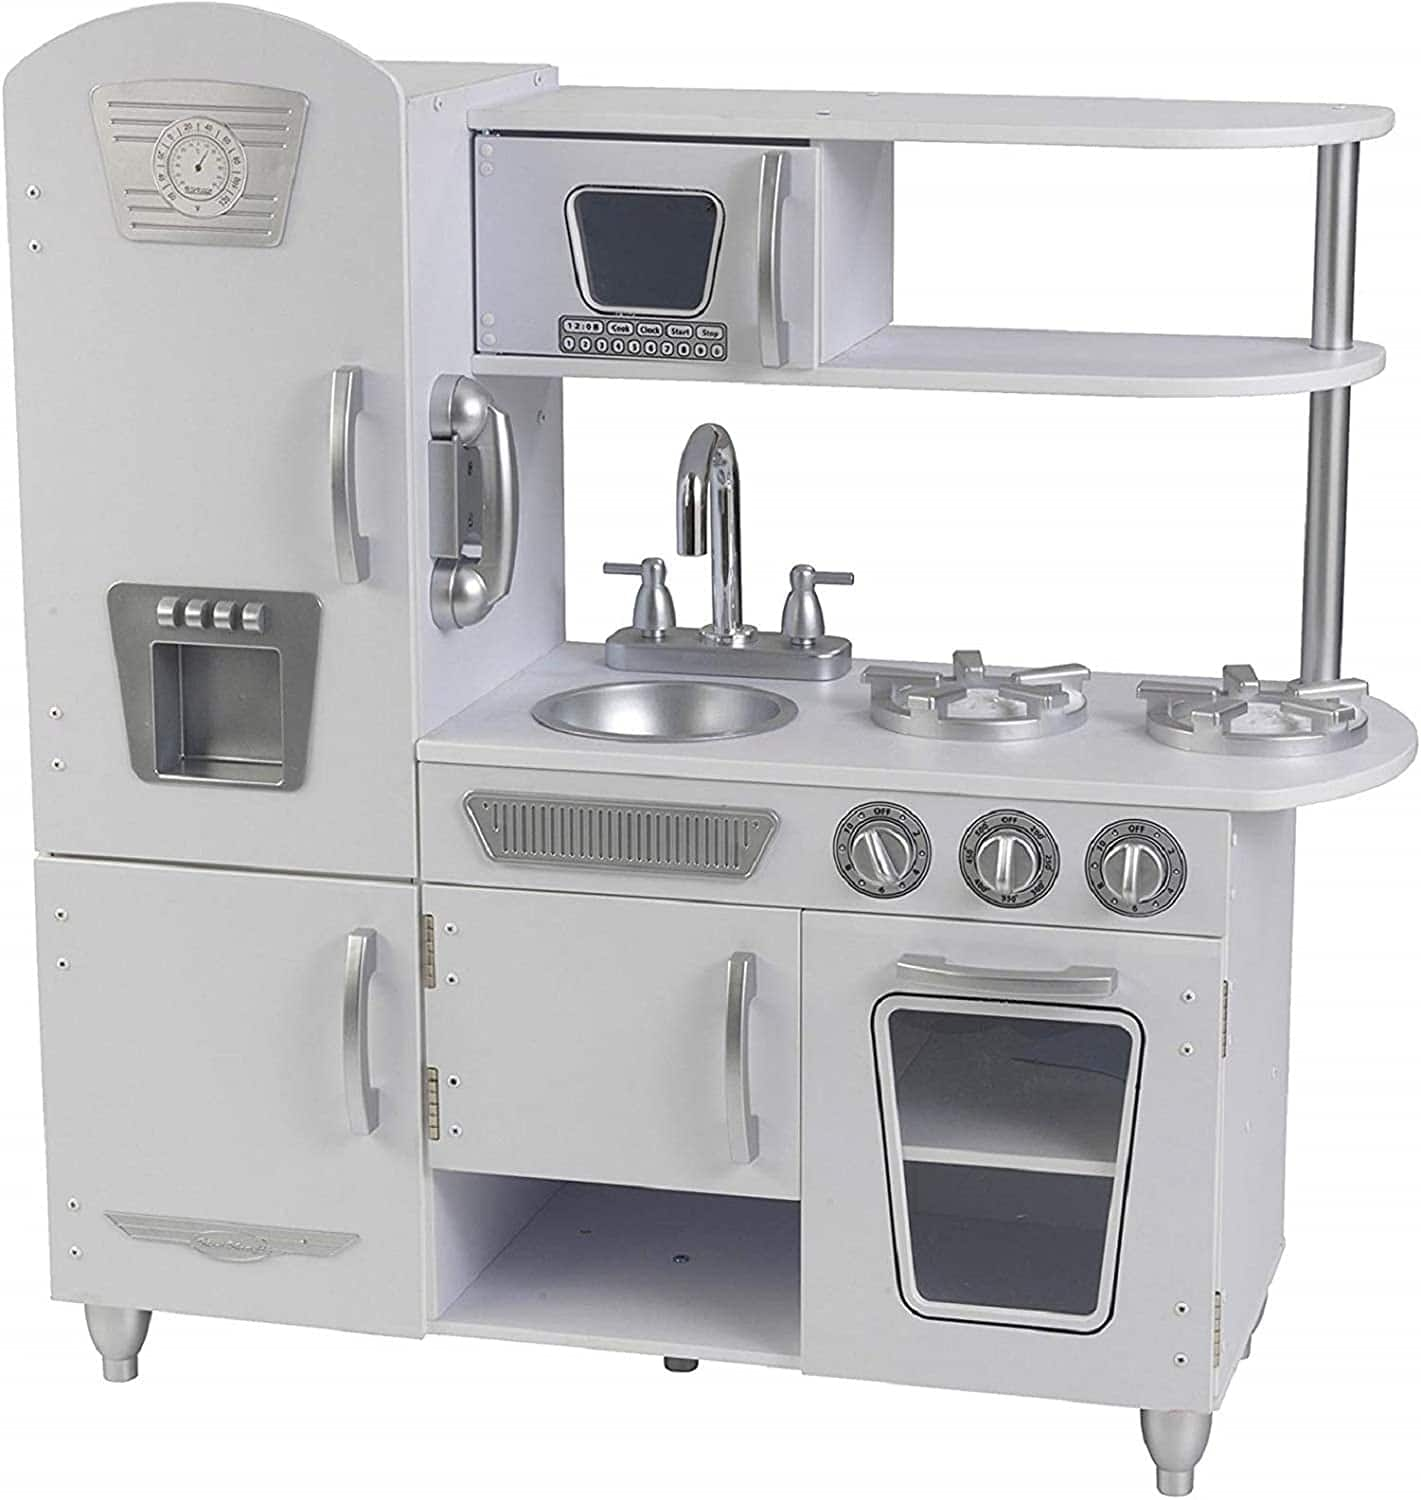 KidKraft Vintage Kitchen - White- $59.99 AC + free shipping